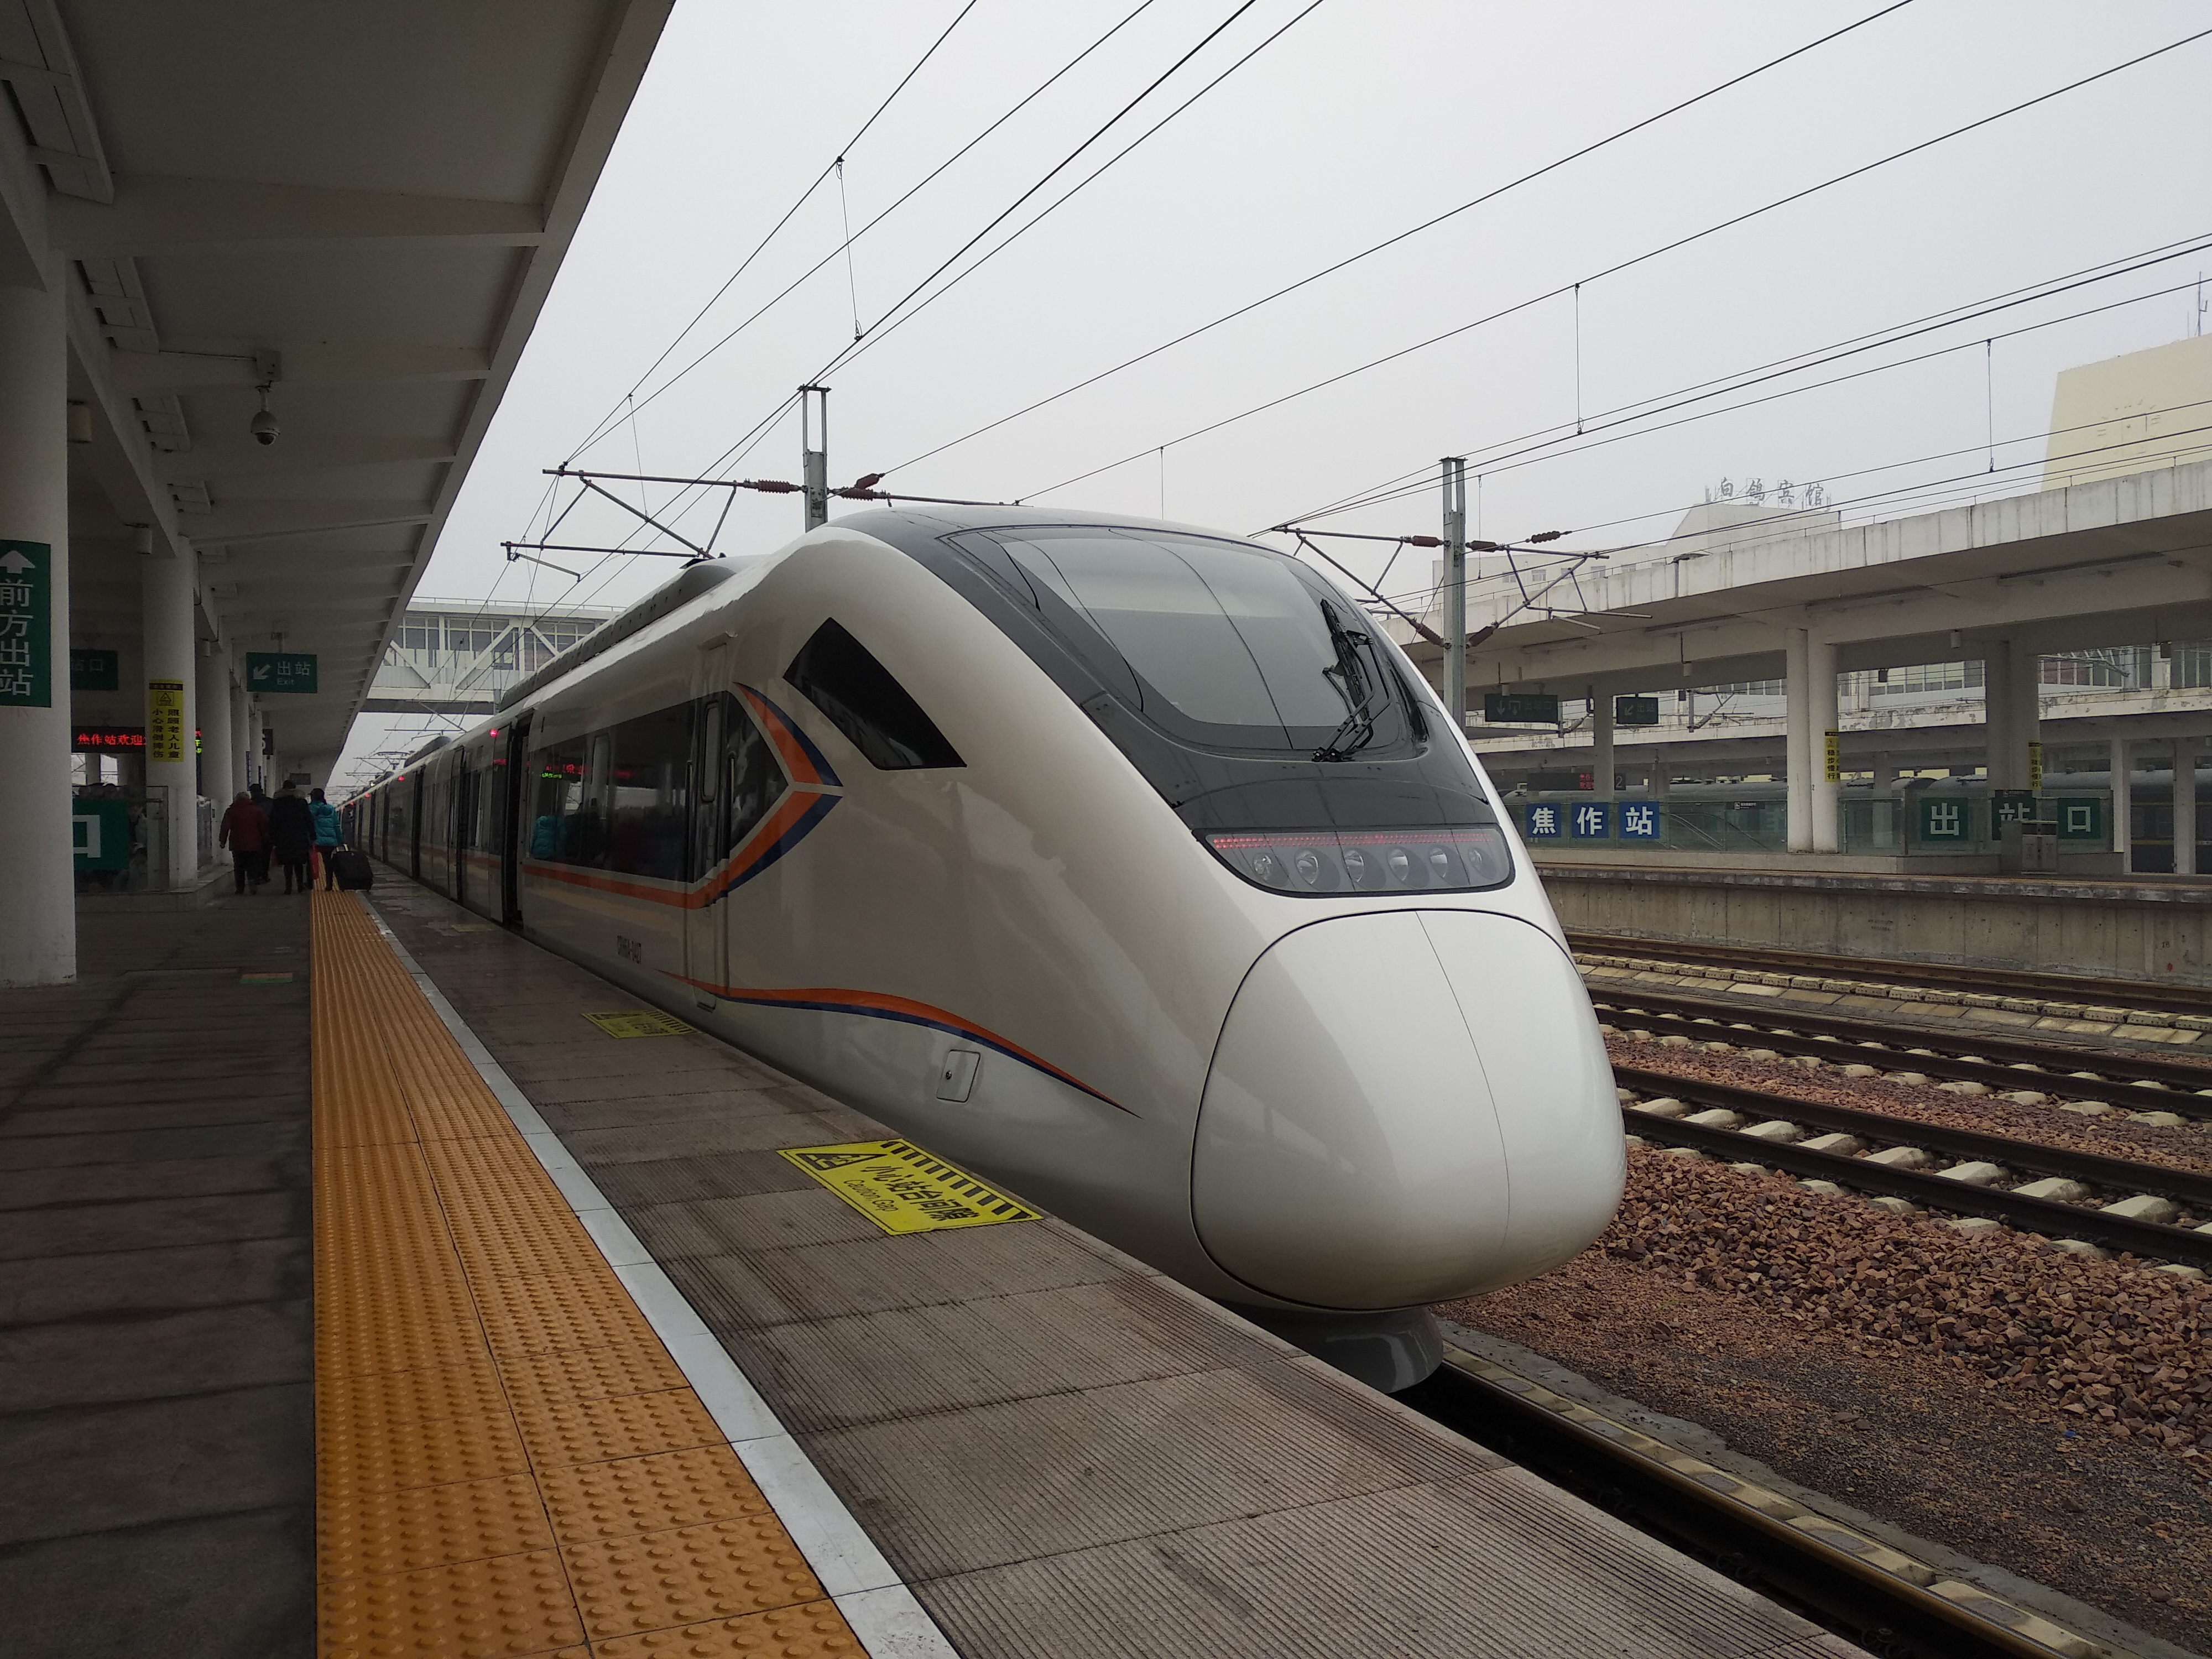 Higher Speed Rail Wikipedia Automatic Railway Gate Control System With High Alerting